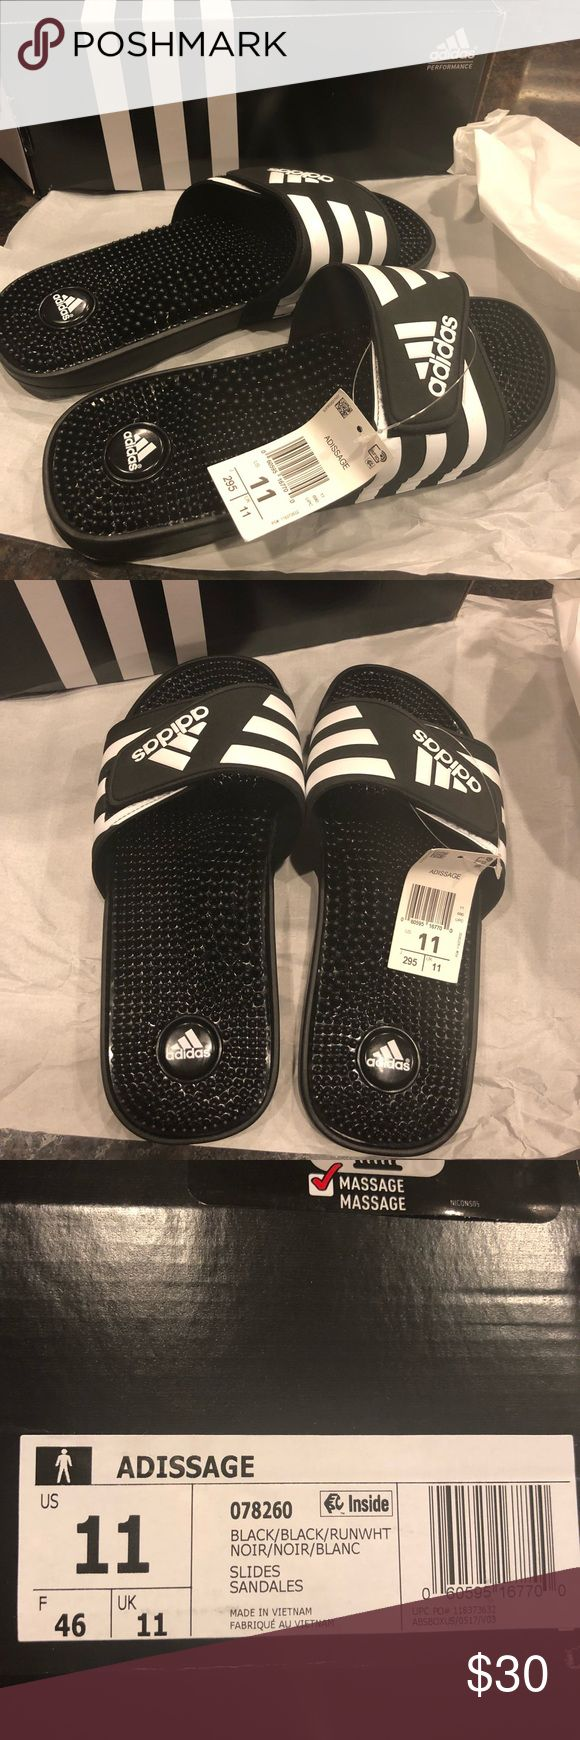 Adidas men's Slides Brand new in box, never worn.  Men's size 11 black Adidas Adidasage Slides Great for a Christmas present!    Adidas slip ons slippers sandals flip flops adidas Shoes Sandals & Flip-Flops